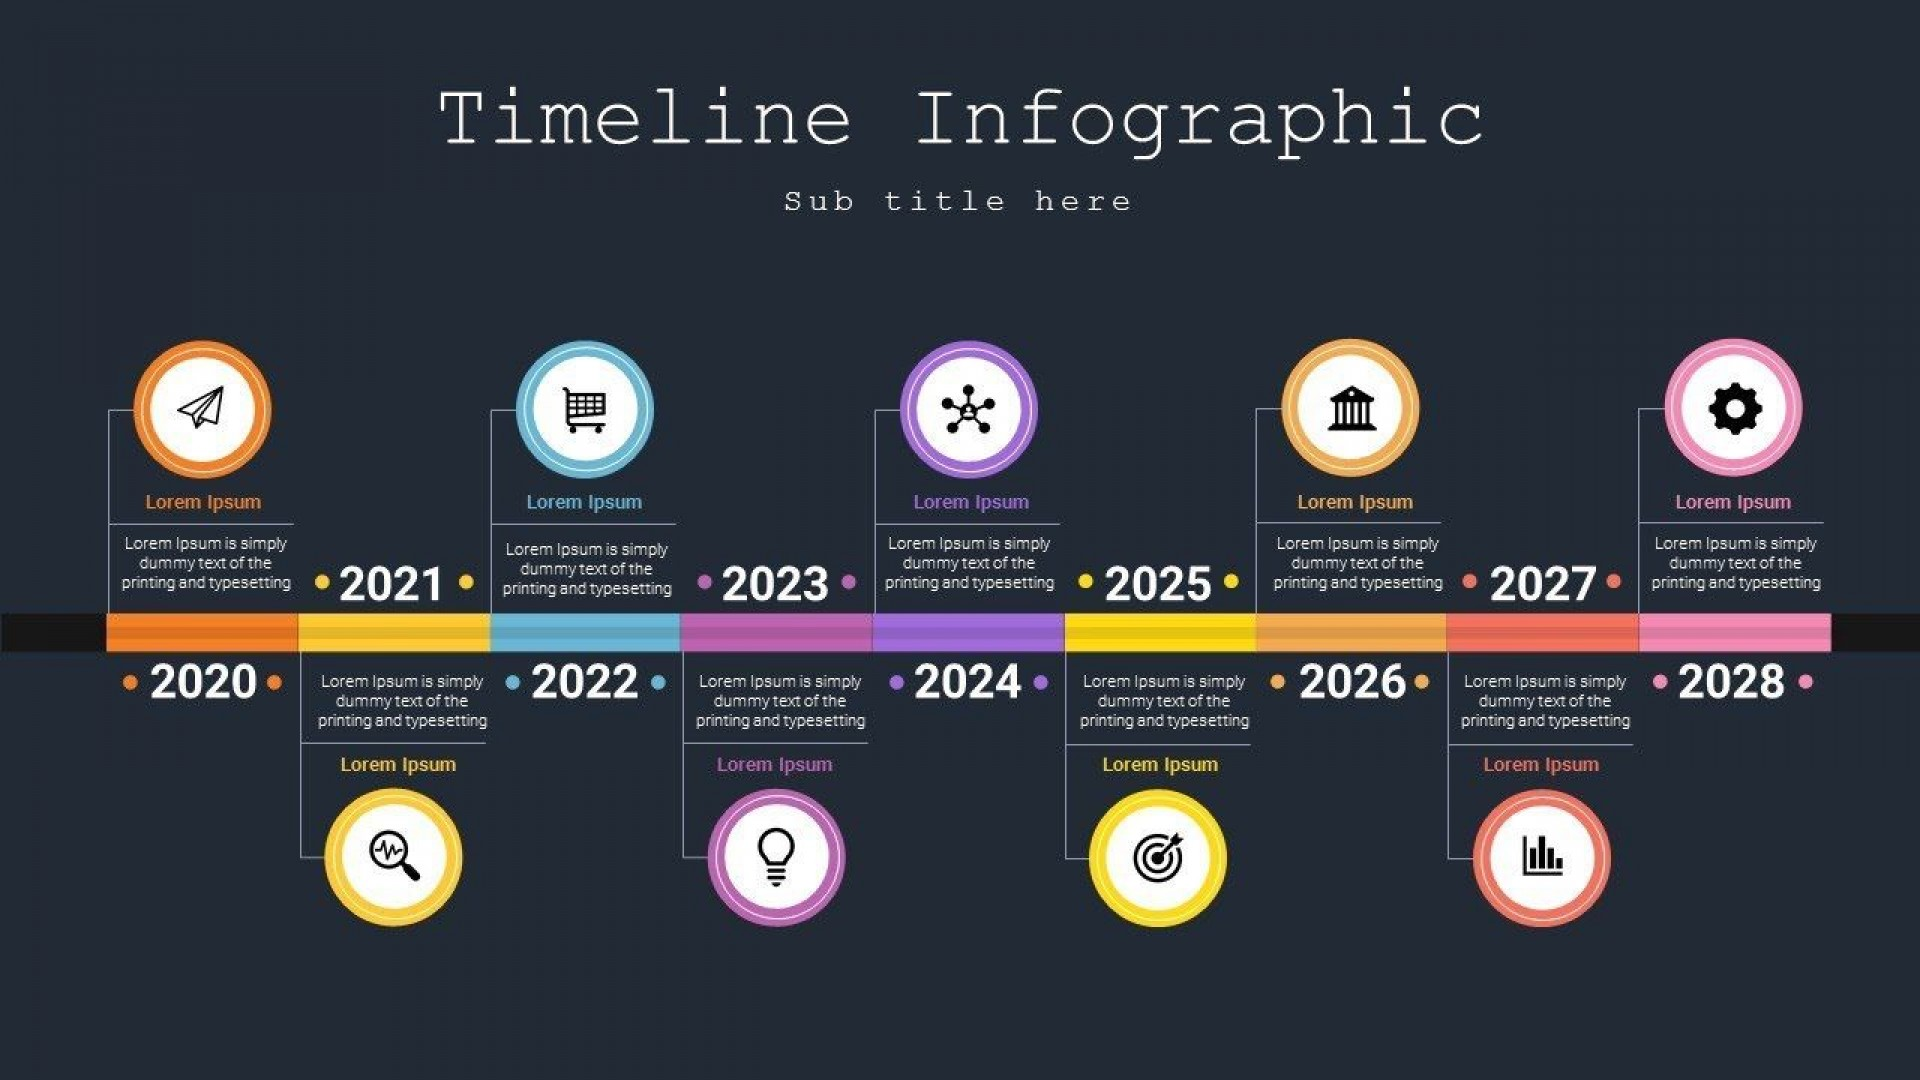 007 Phenomenal Timeline Template Ppt Free Download Sample  Infographic Powerpoint Project1920